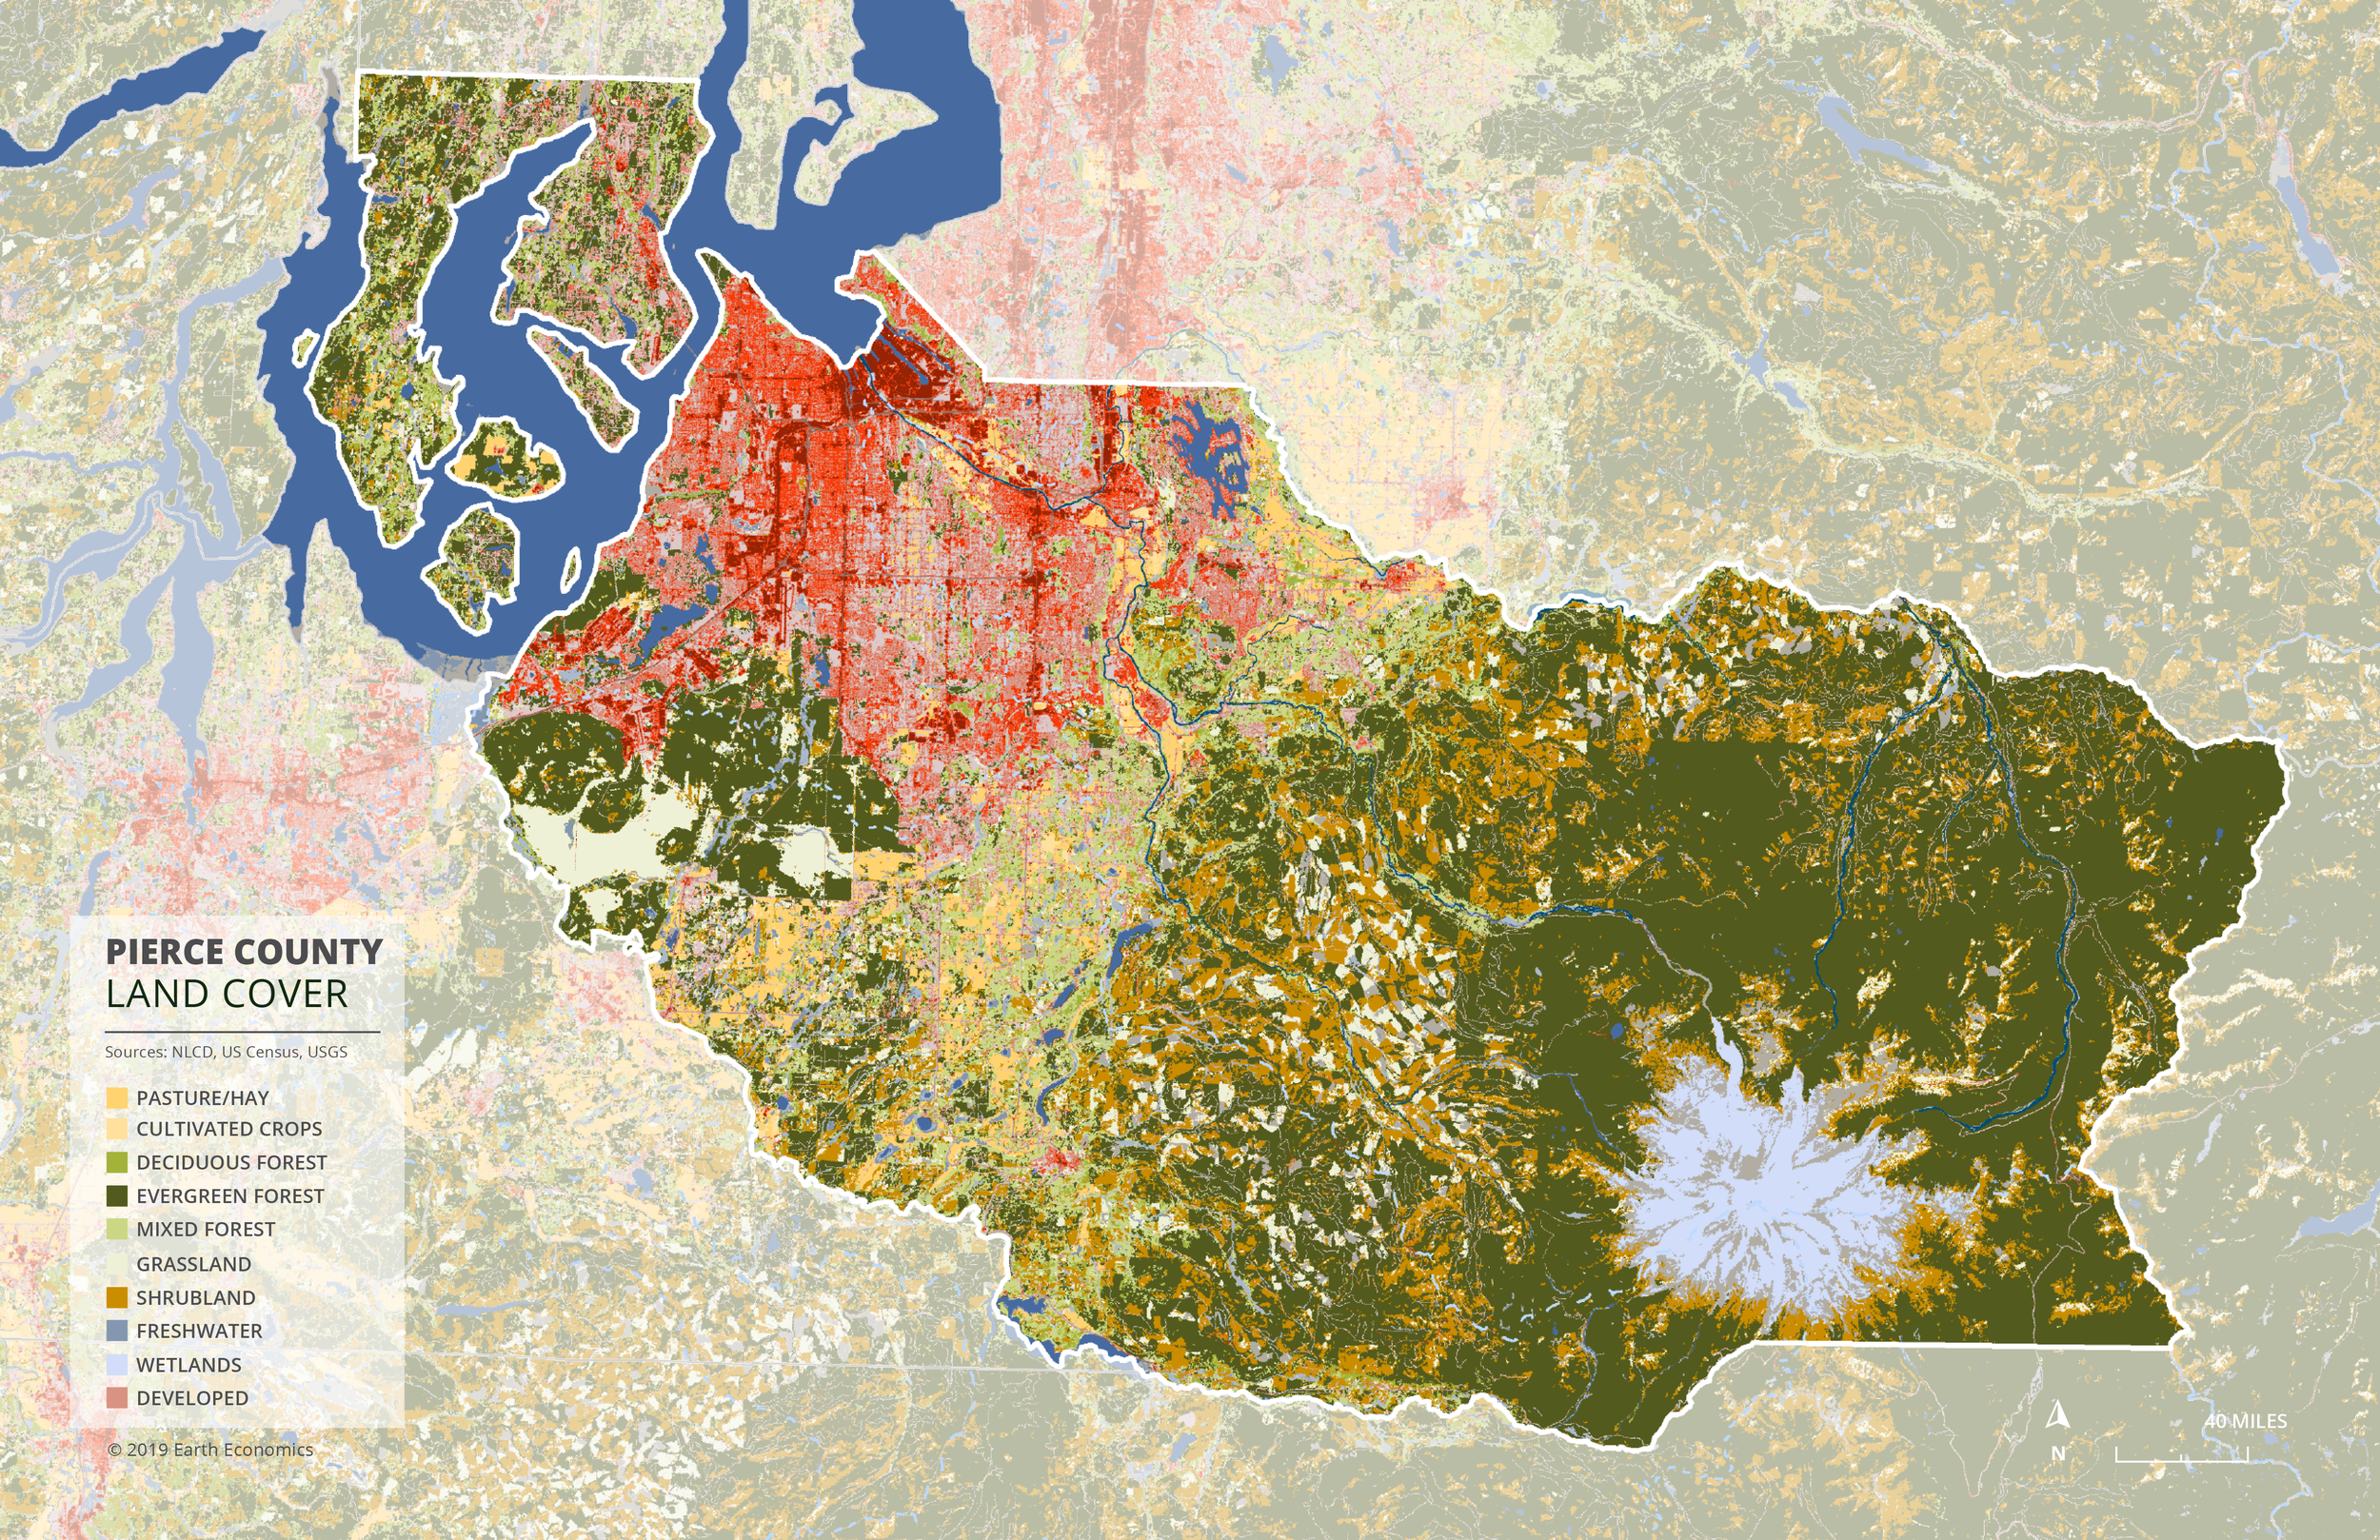 Map: Land Cover Type, Pierce County  Click to Enlarge